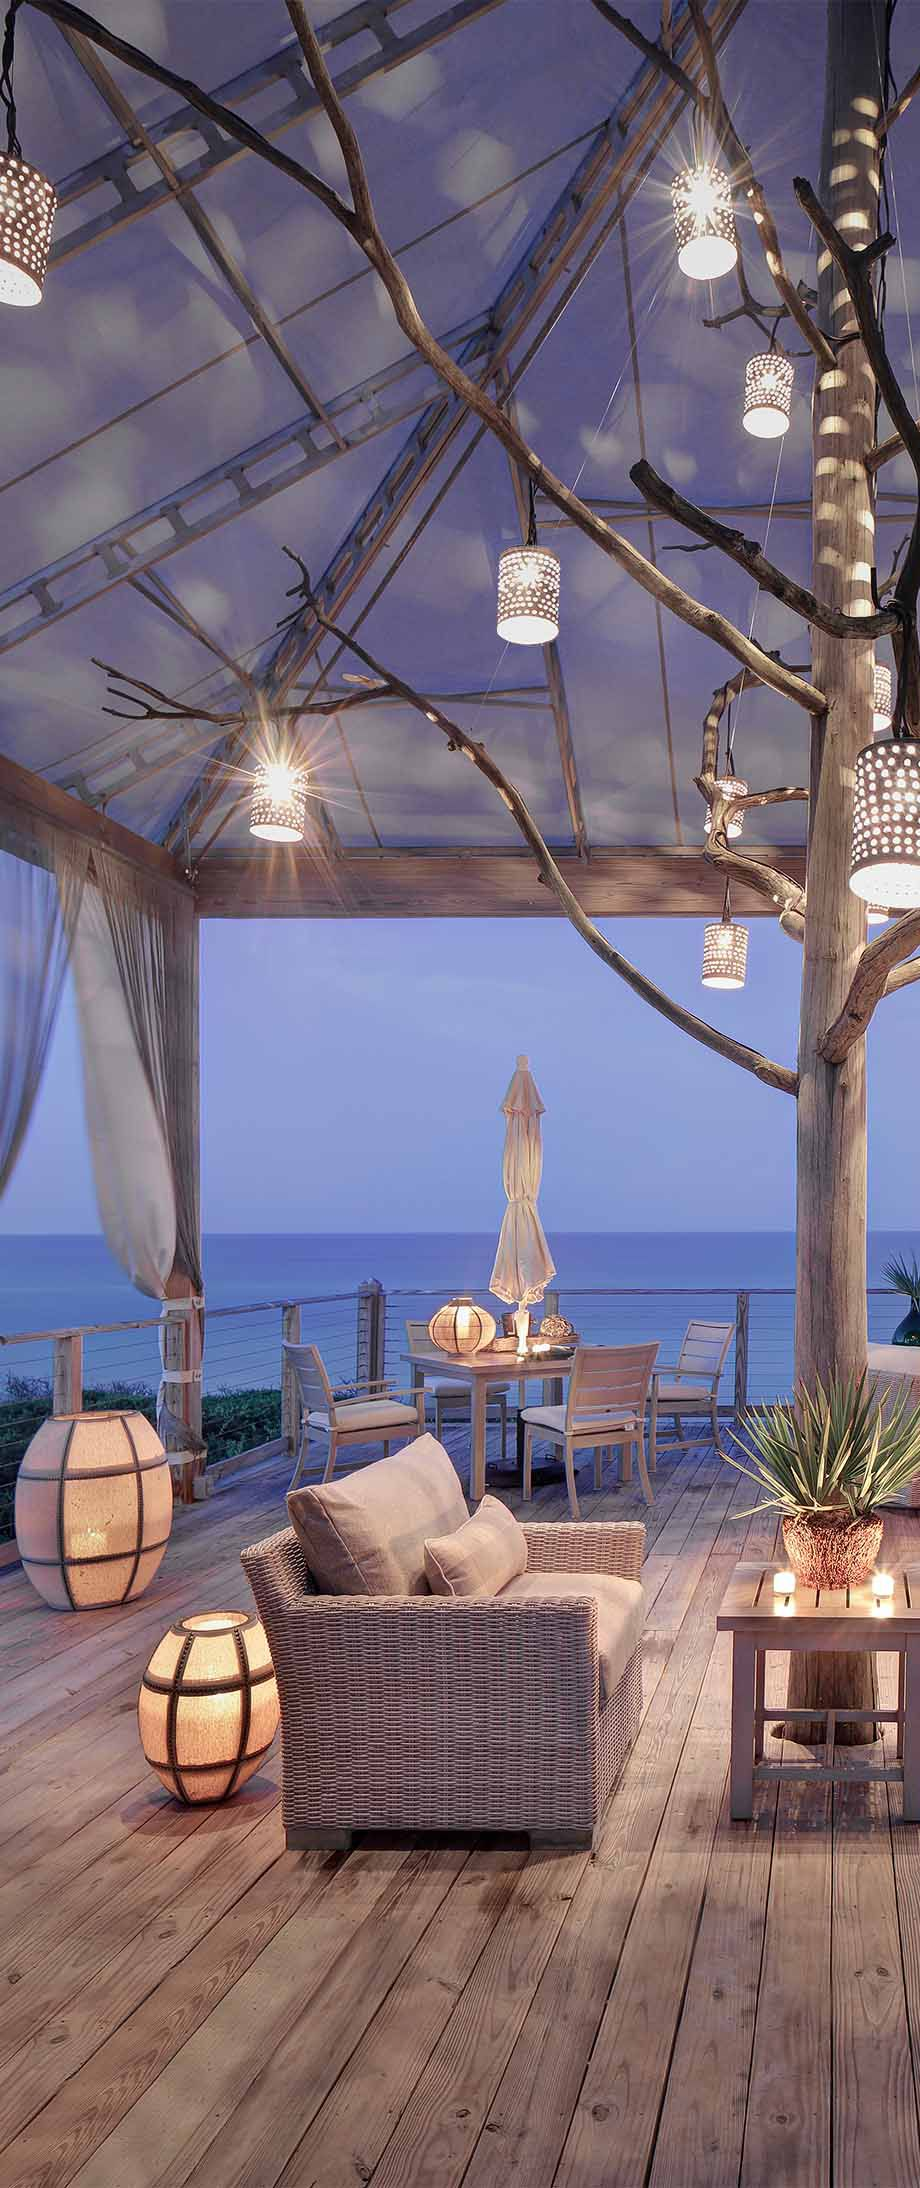 Decorating with Lanterns PATIOS & PORCHES